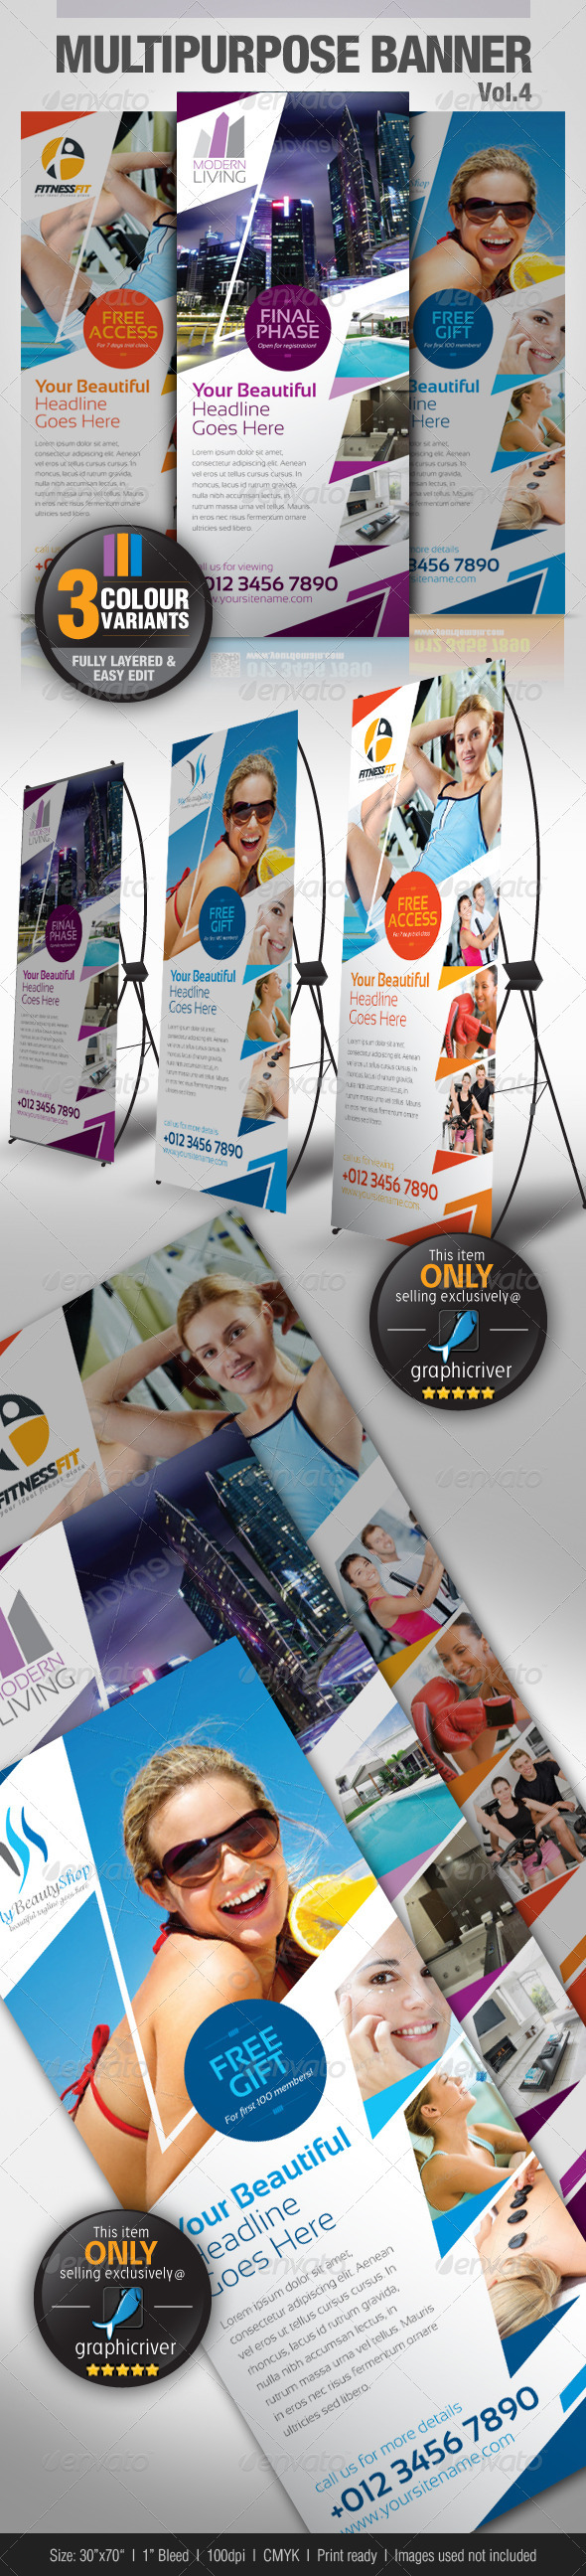 Multipurpose Banner Vol.4 - Signage Print Templates